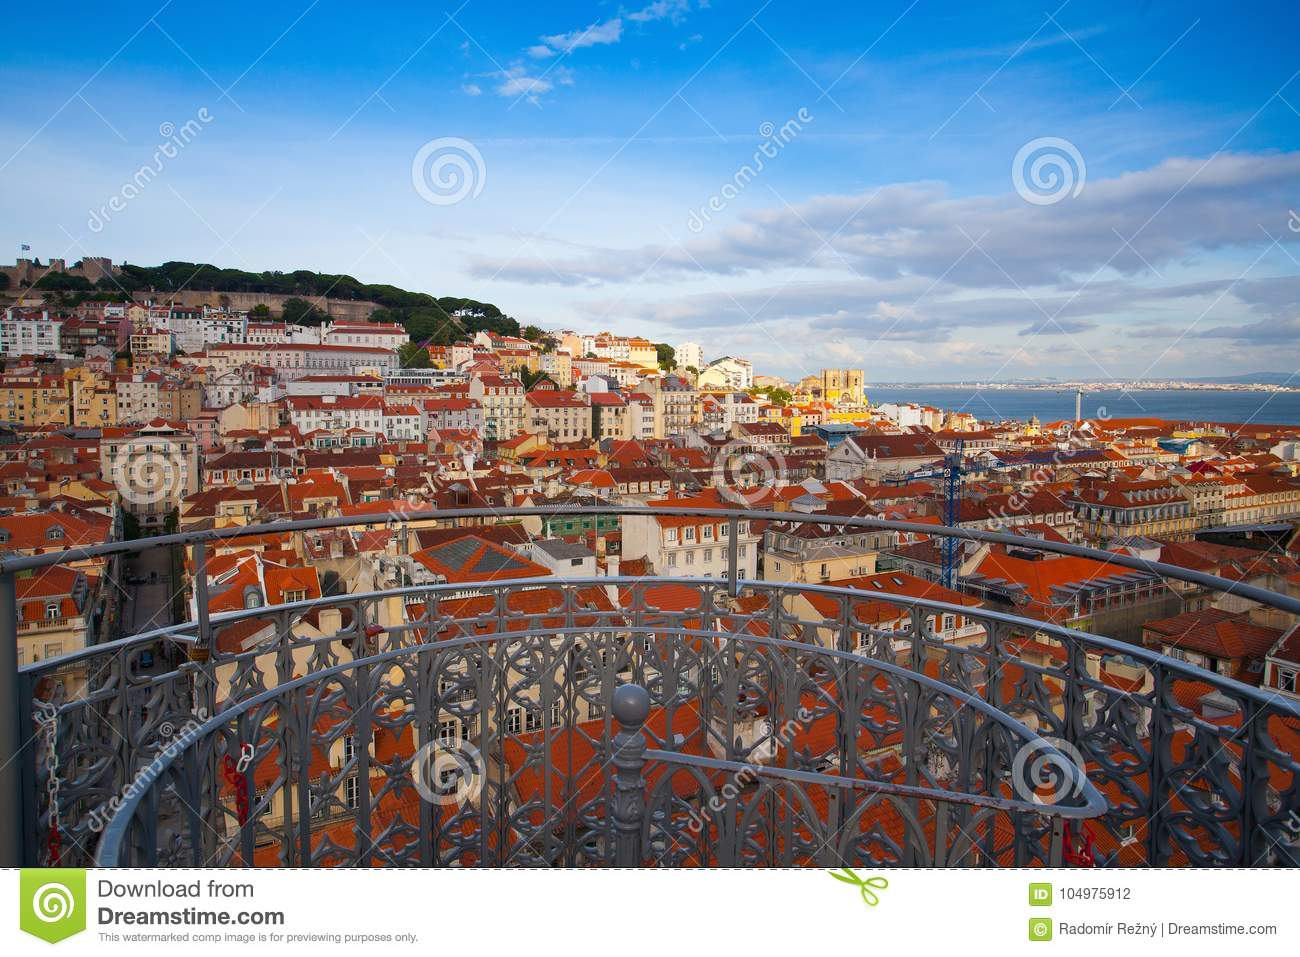 View from the top of the Santa Justa elevator on Lisbon